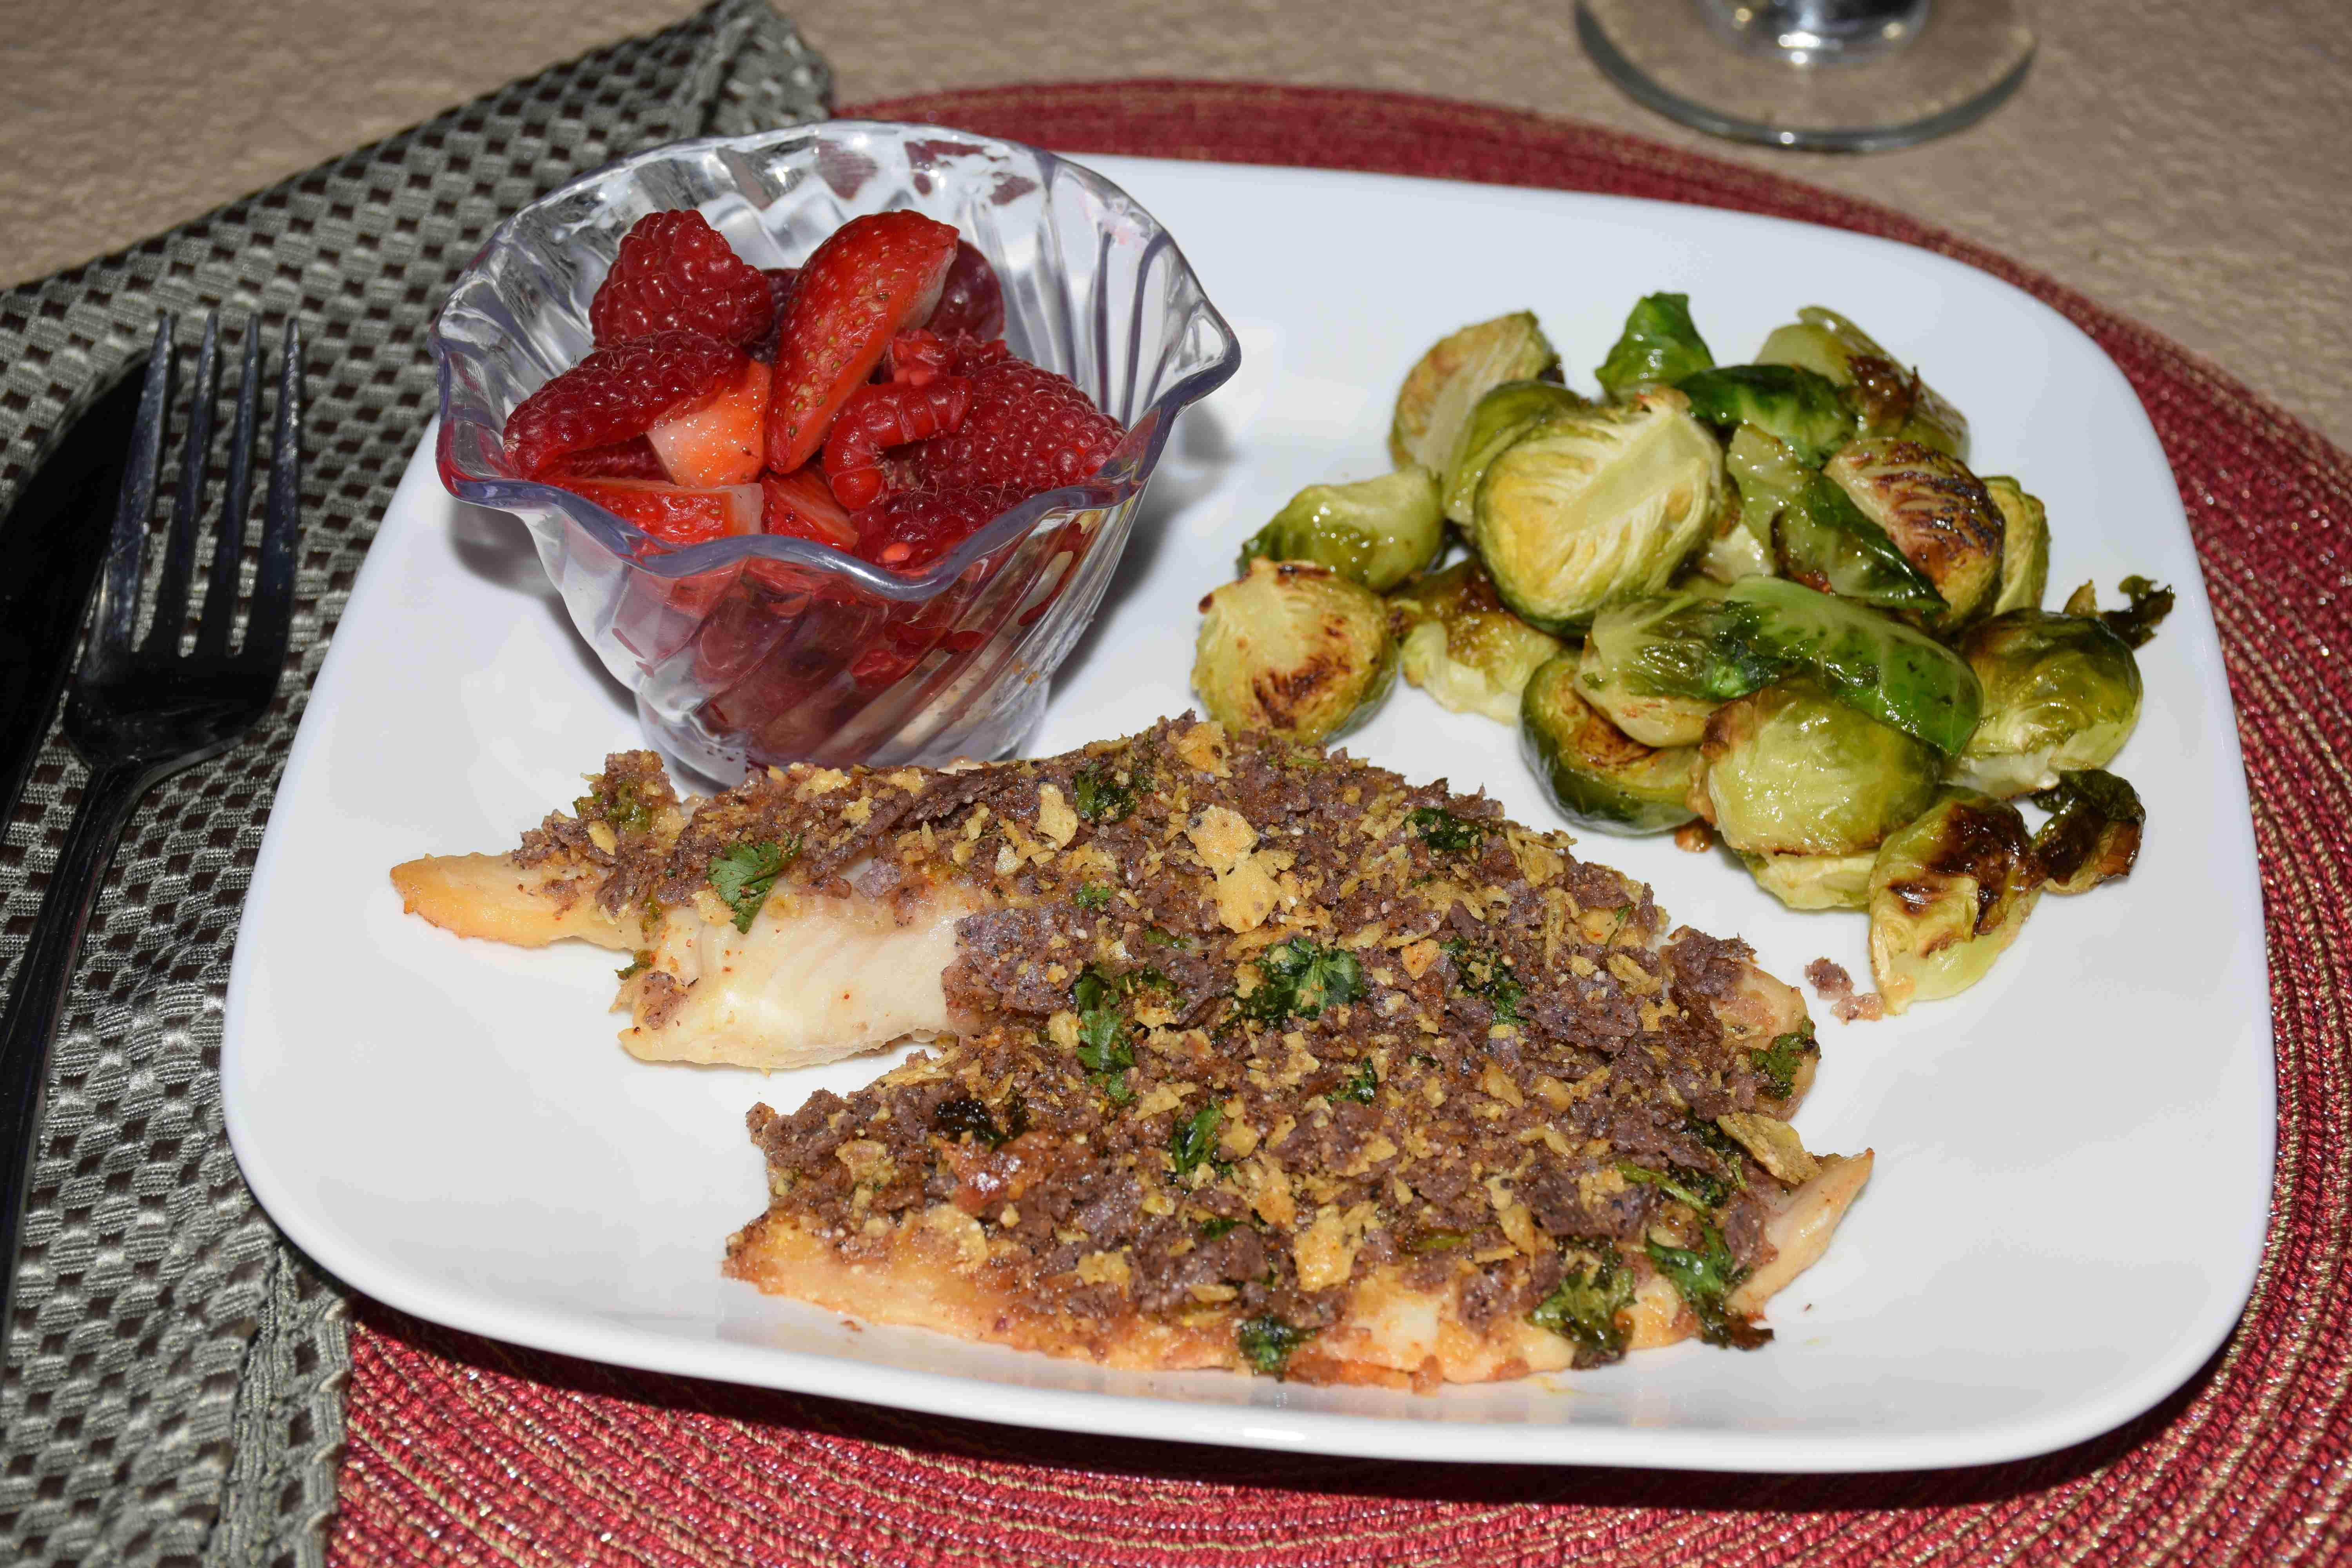 Tortilla Crusted Tilapia with Roasted Brussel Sprouts and Fruit